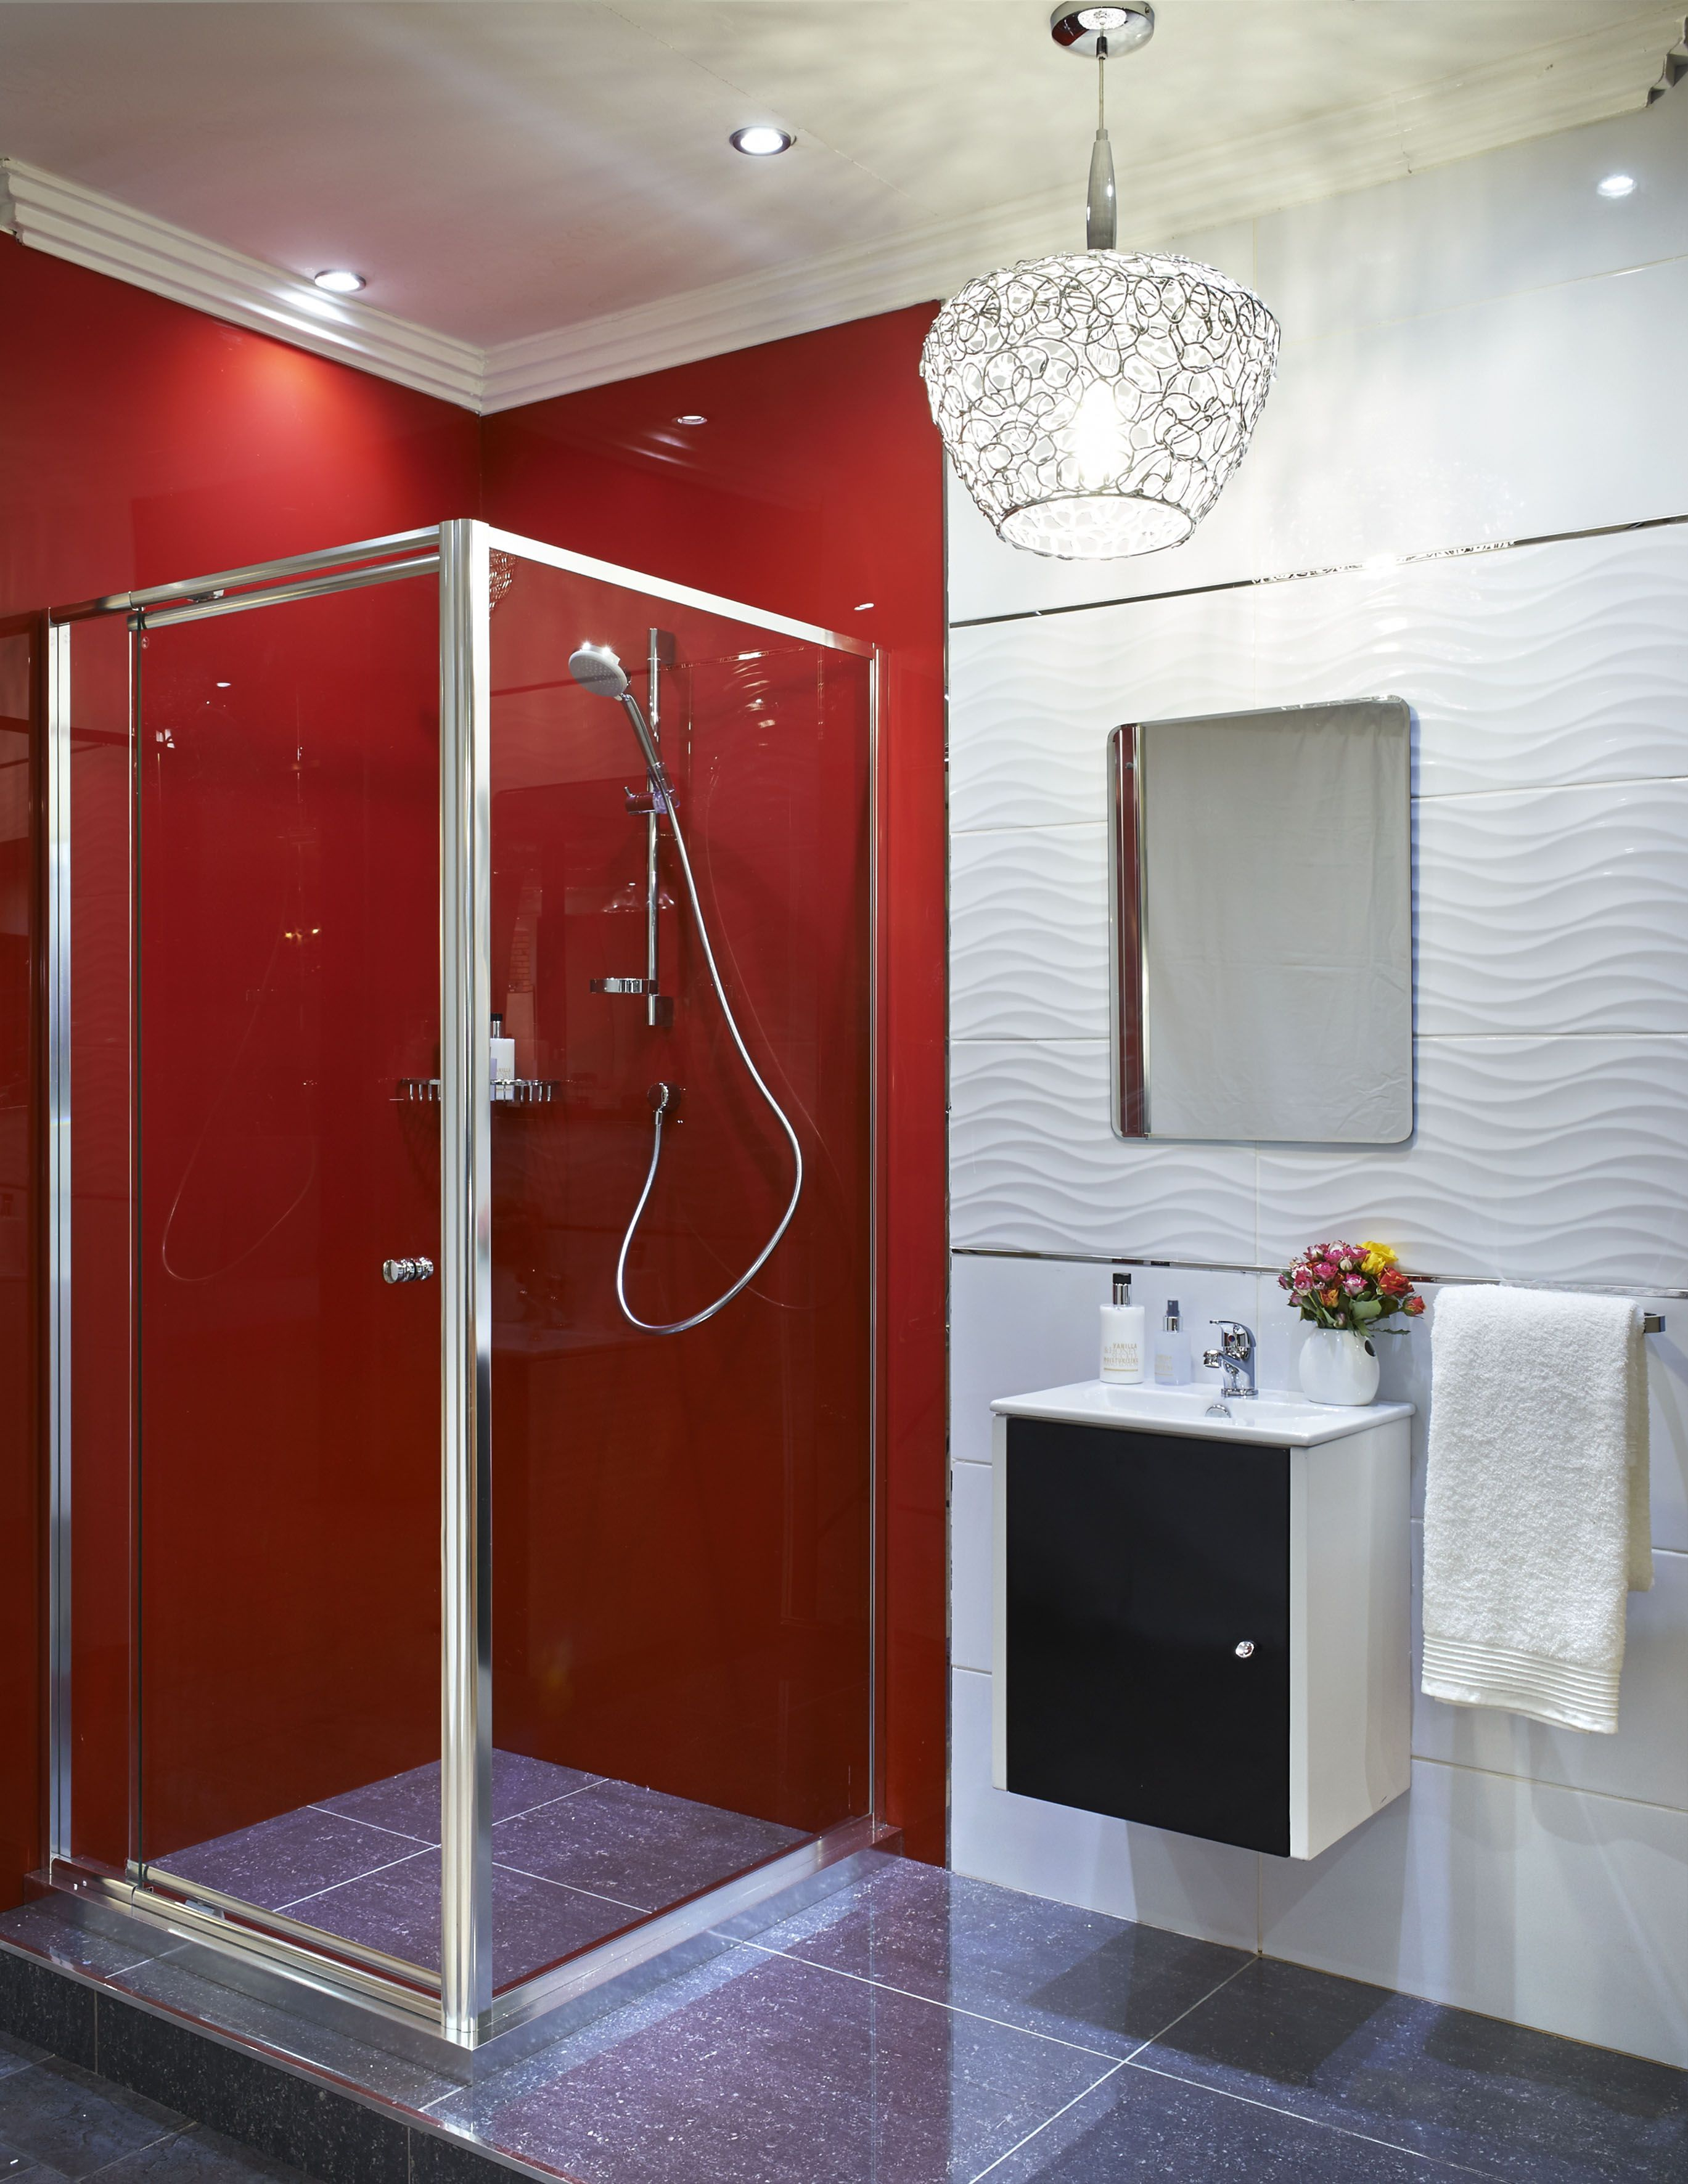 Lustrolite Is An Award Winning High Gloss Acrylic Wall Panel It S The Perfect Material To Create Stunning Acrylic Wall Panels Bathroom Wall Panels Wall Panels